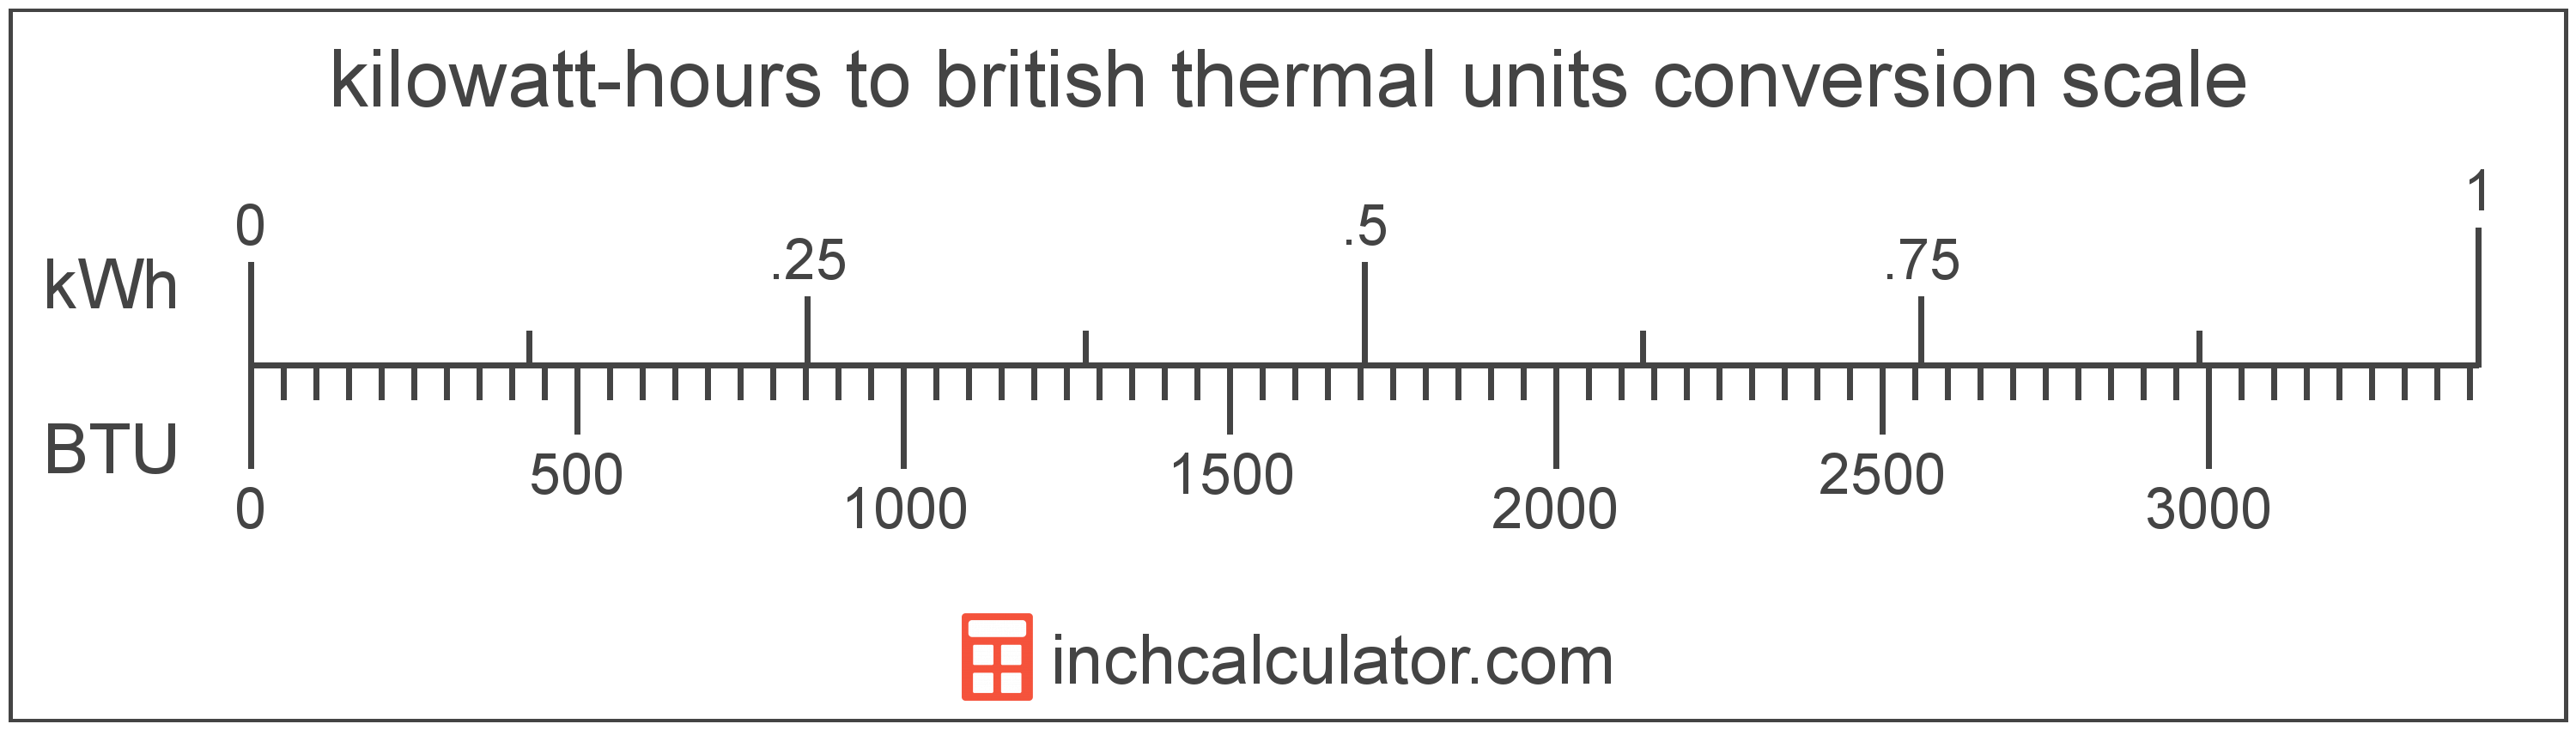 conversion scale showing kilowatt-hours and equivalent british thermal units energy values